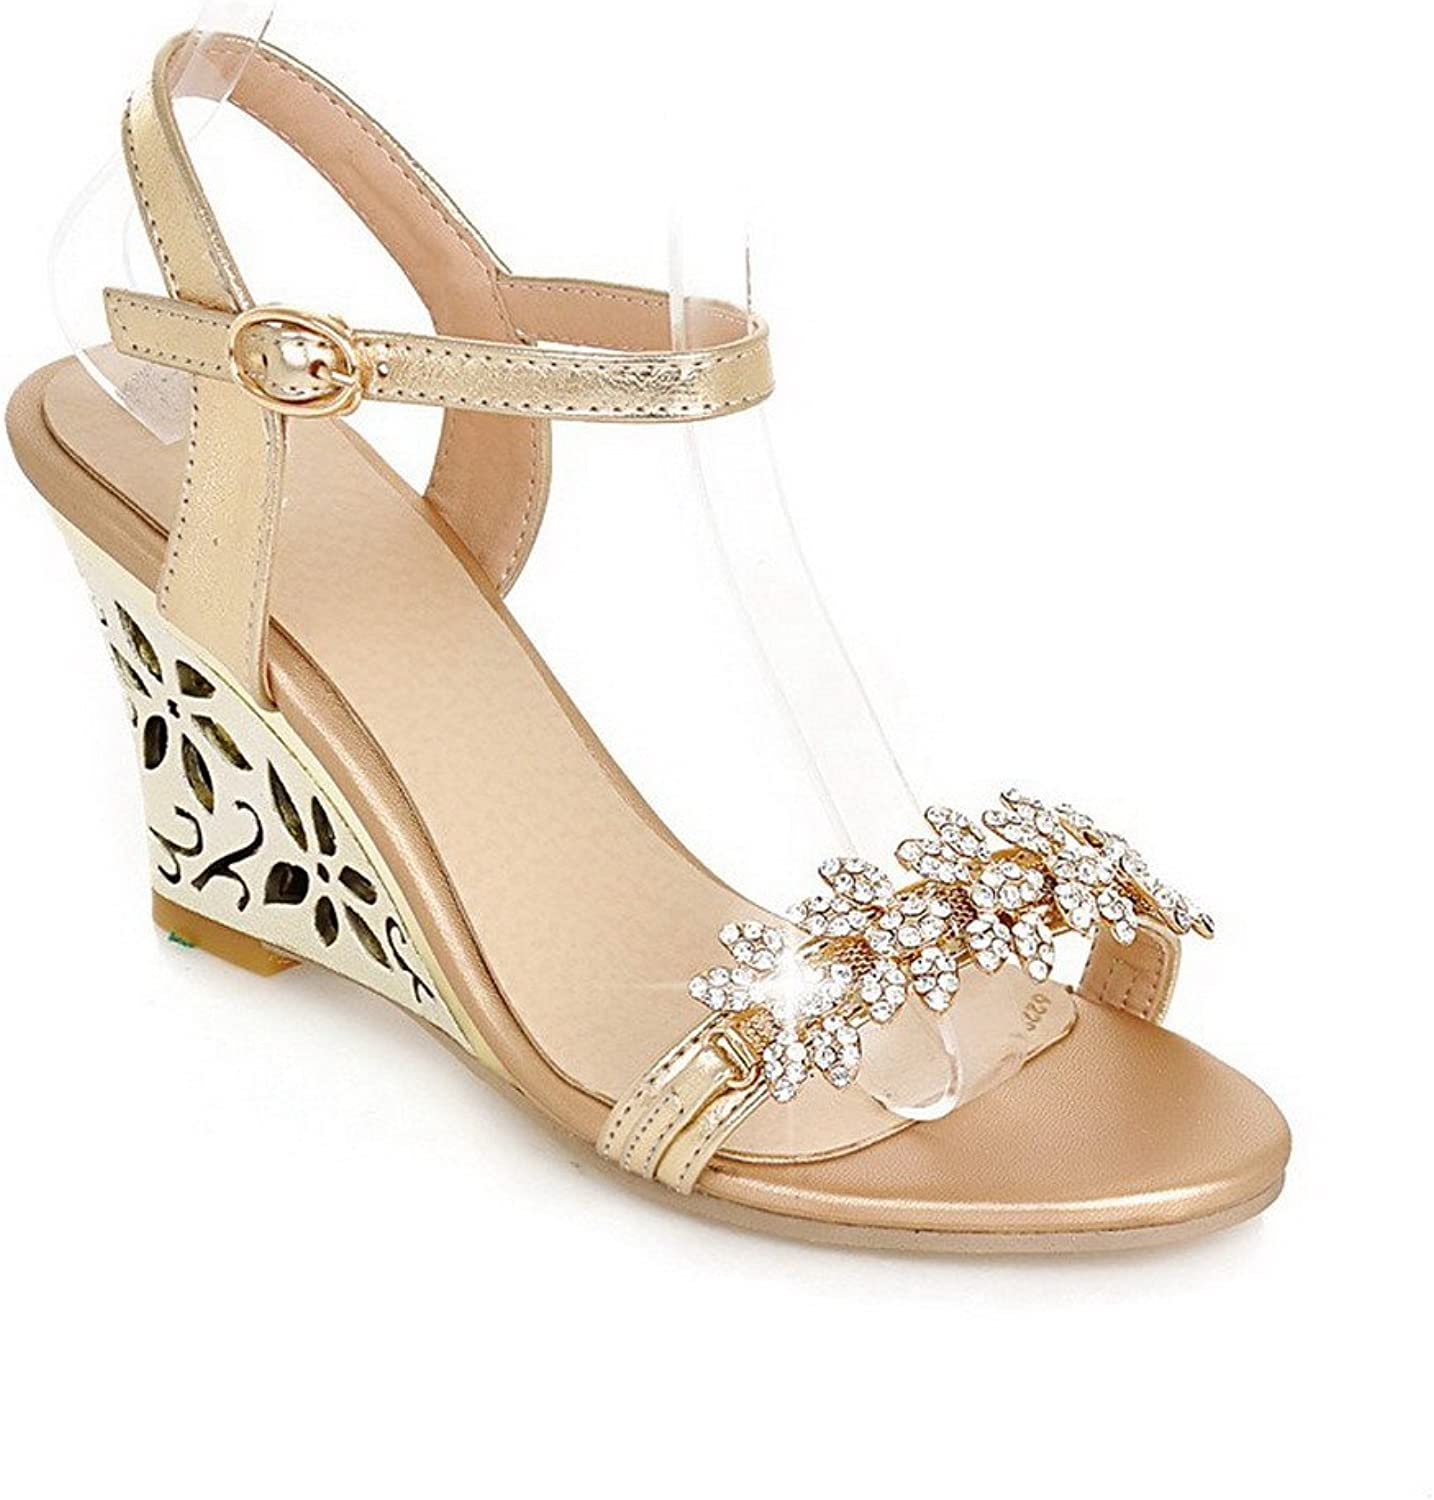 AmoonyFashion Women's Open Toe High Heel Wedge PU Soft Material Solid Sandals, gold, 7.5 B(M) US